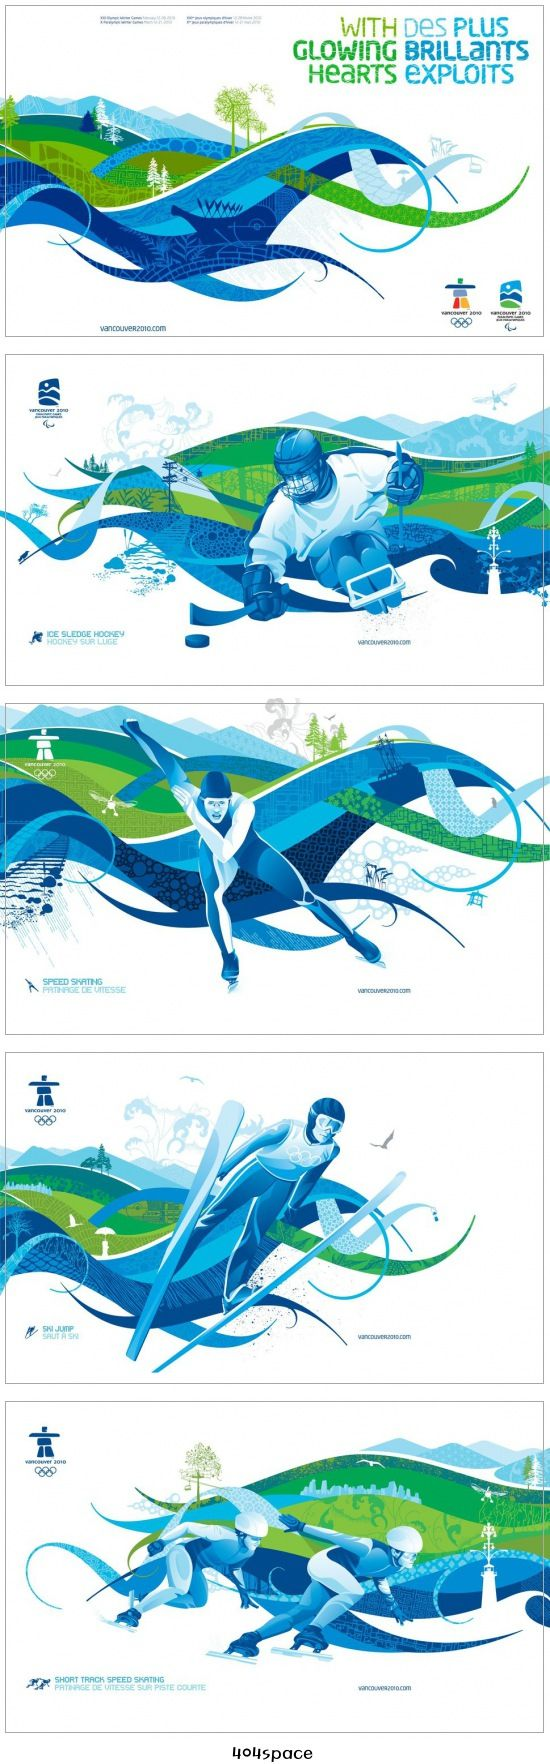 Vancouver Olimpic Poster *****Love the sense of movement created by the wave like shapes. The limited colour palette helps to mesh the shapes and the athletes together, creating a harmony between the two. I would like to use this sense of movement using shapes and colour in my artwork. The subtle patterns add an element of interest and dimension to the image.*****